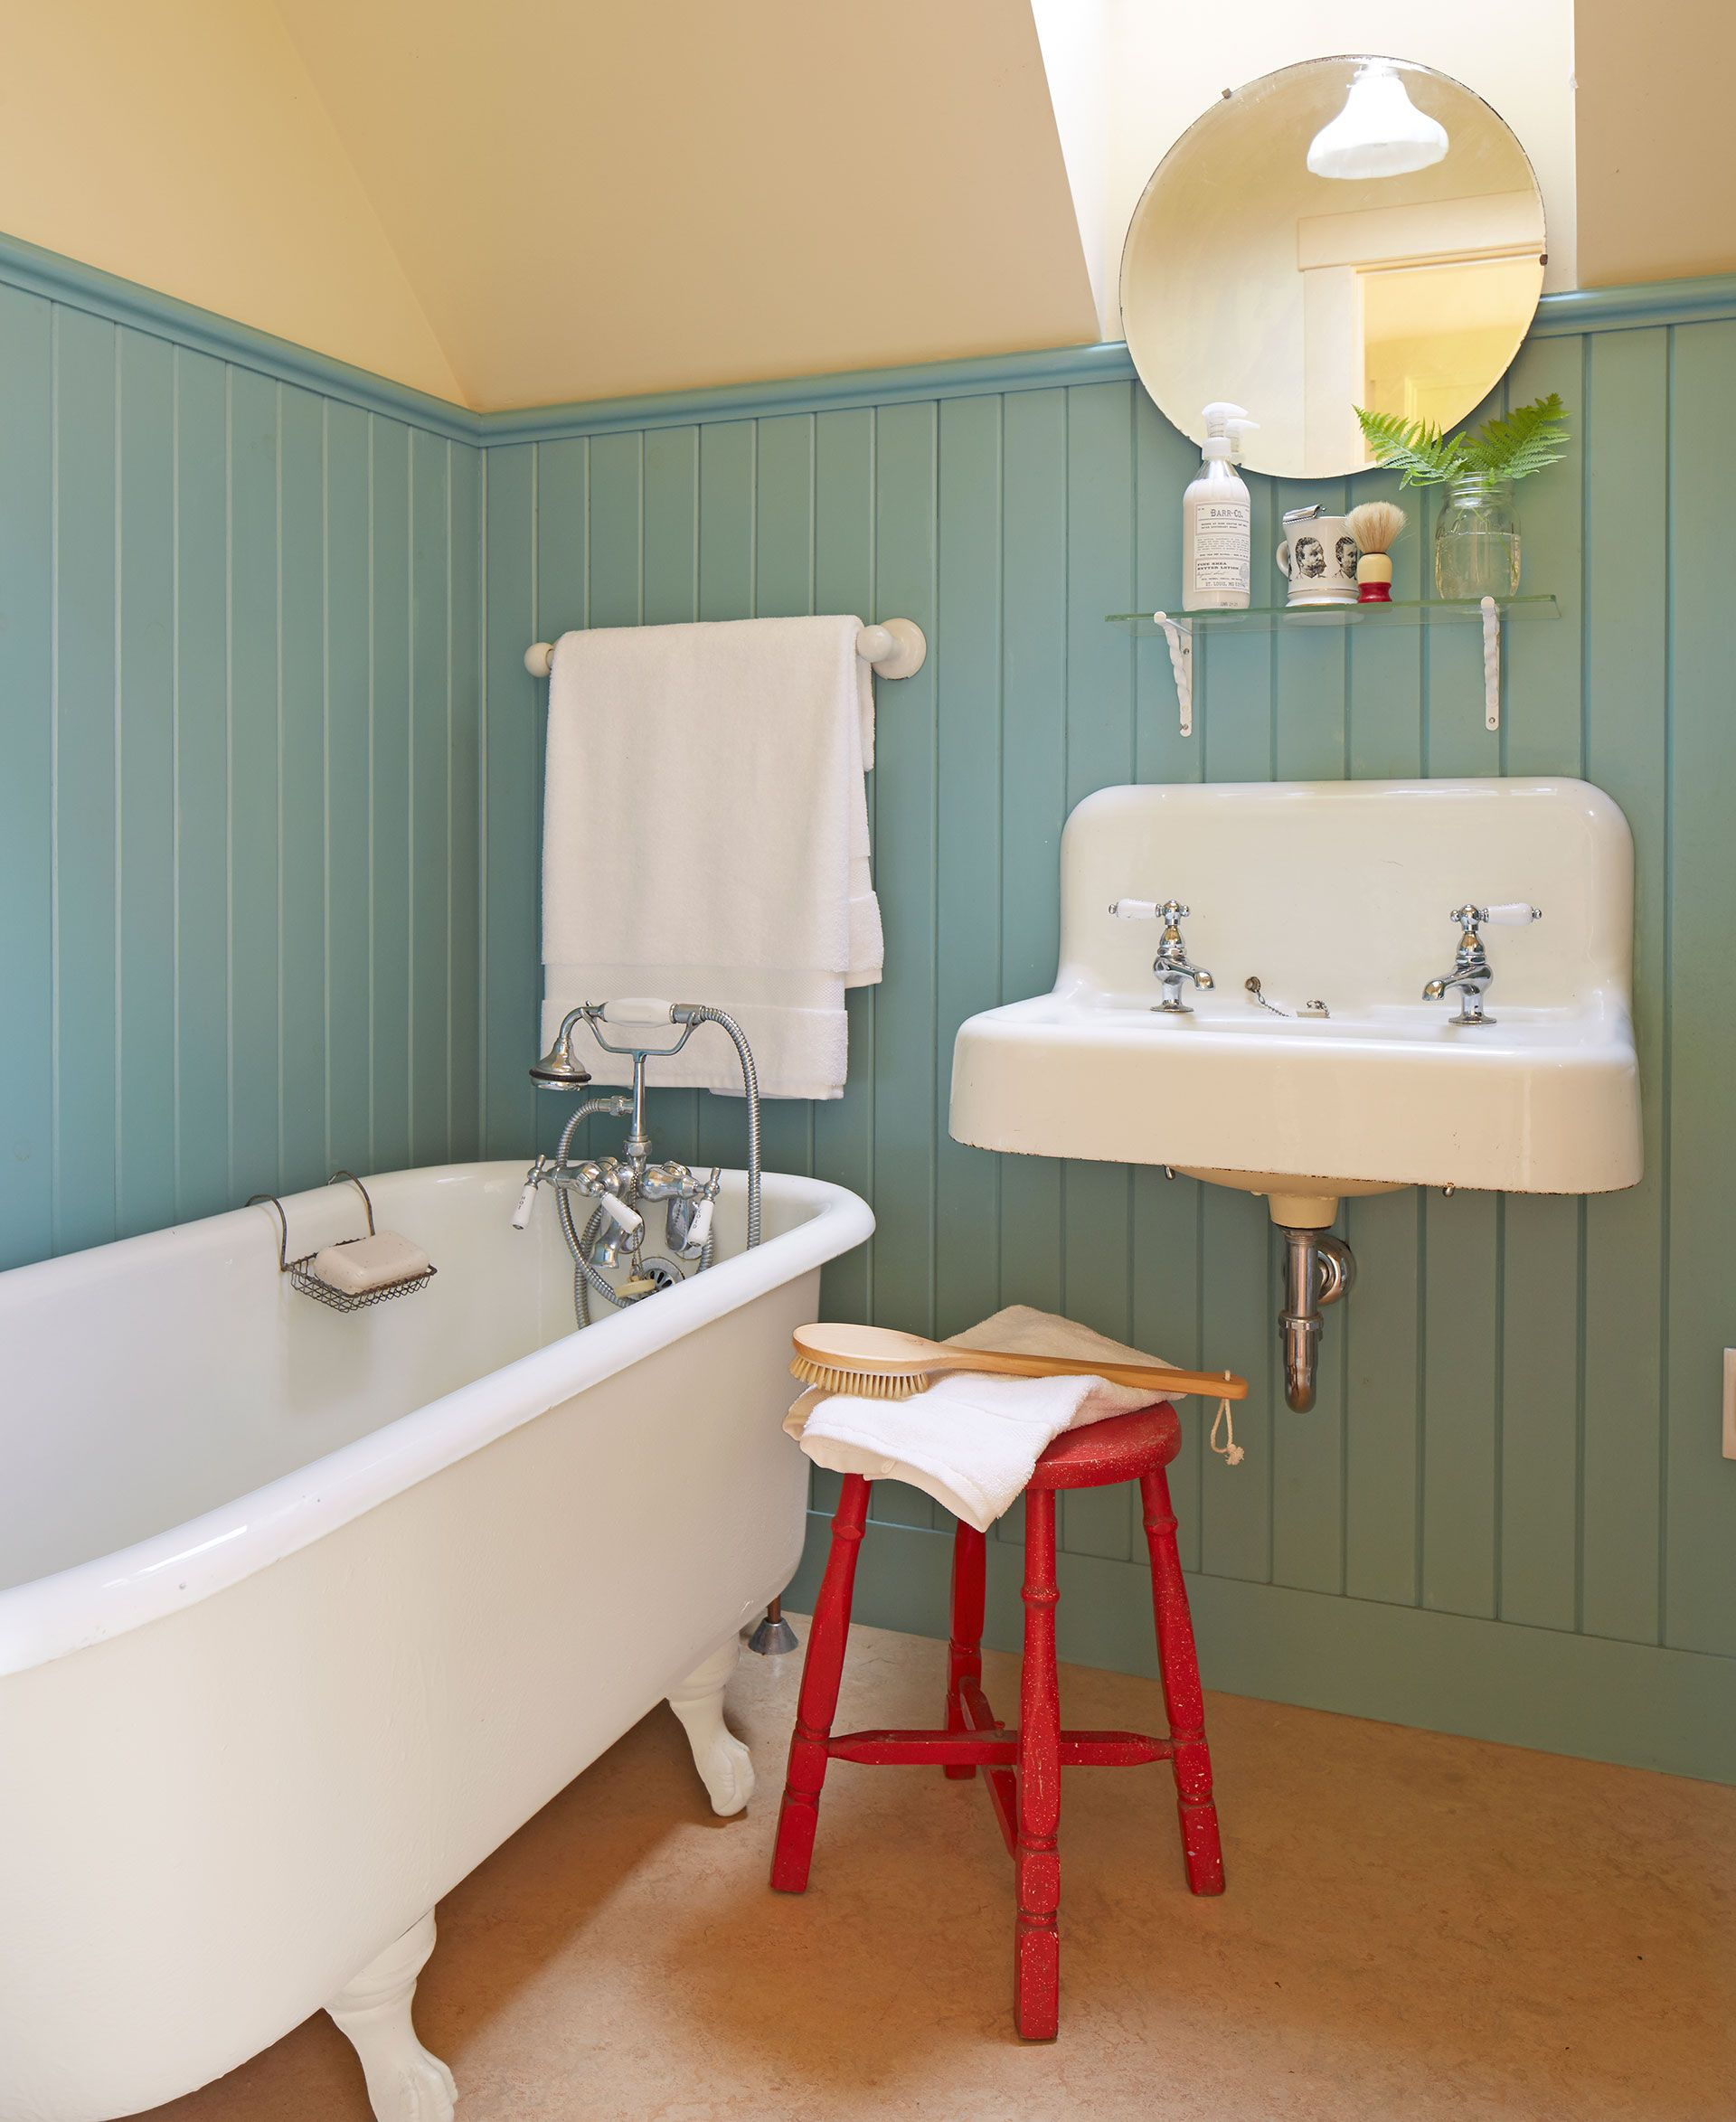 80 inspiring bathroom decorating ideas - Bathroom Designs Using Beadboard